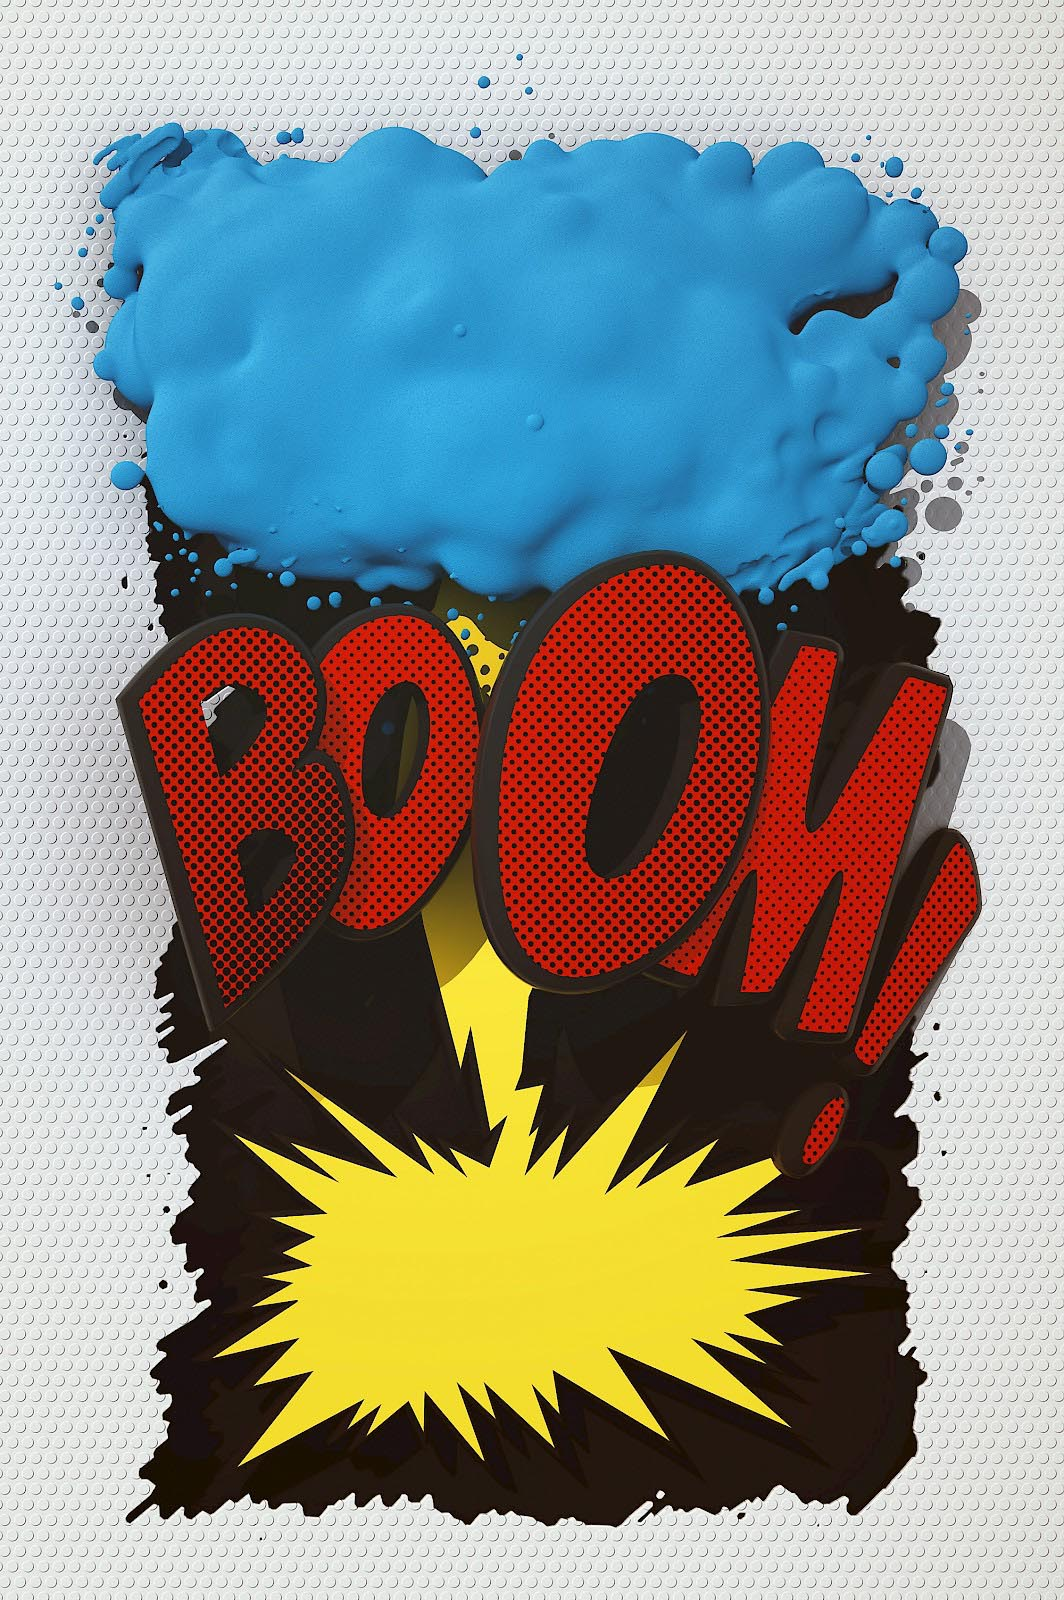 Onomatopoeia Boom comic cartoon typo typography font slang 3D flash